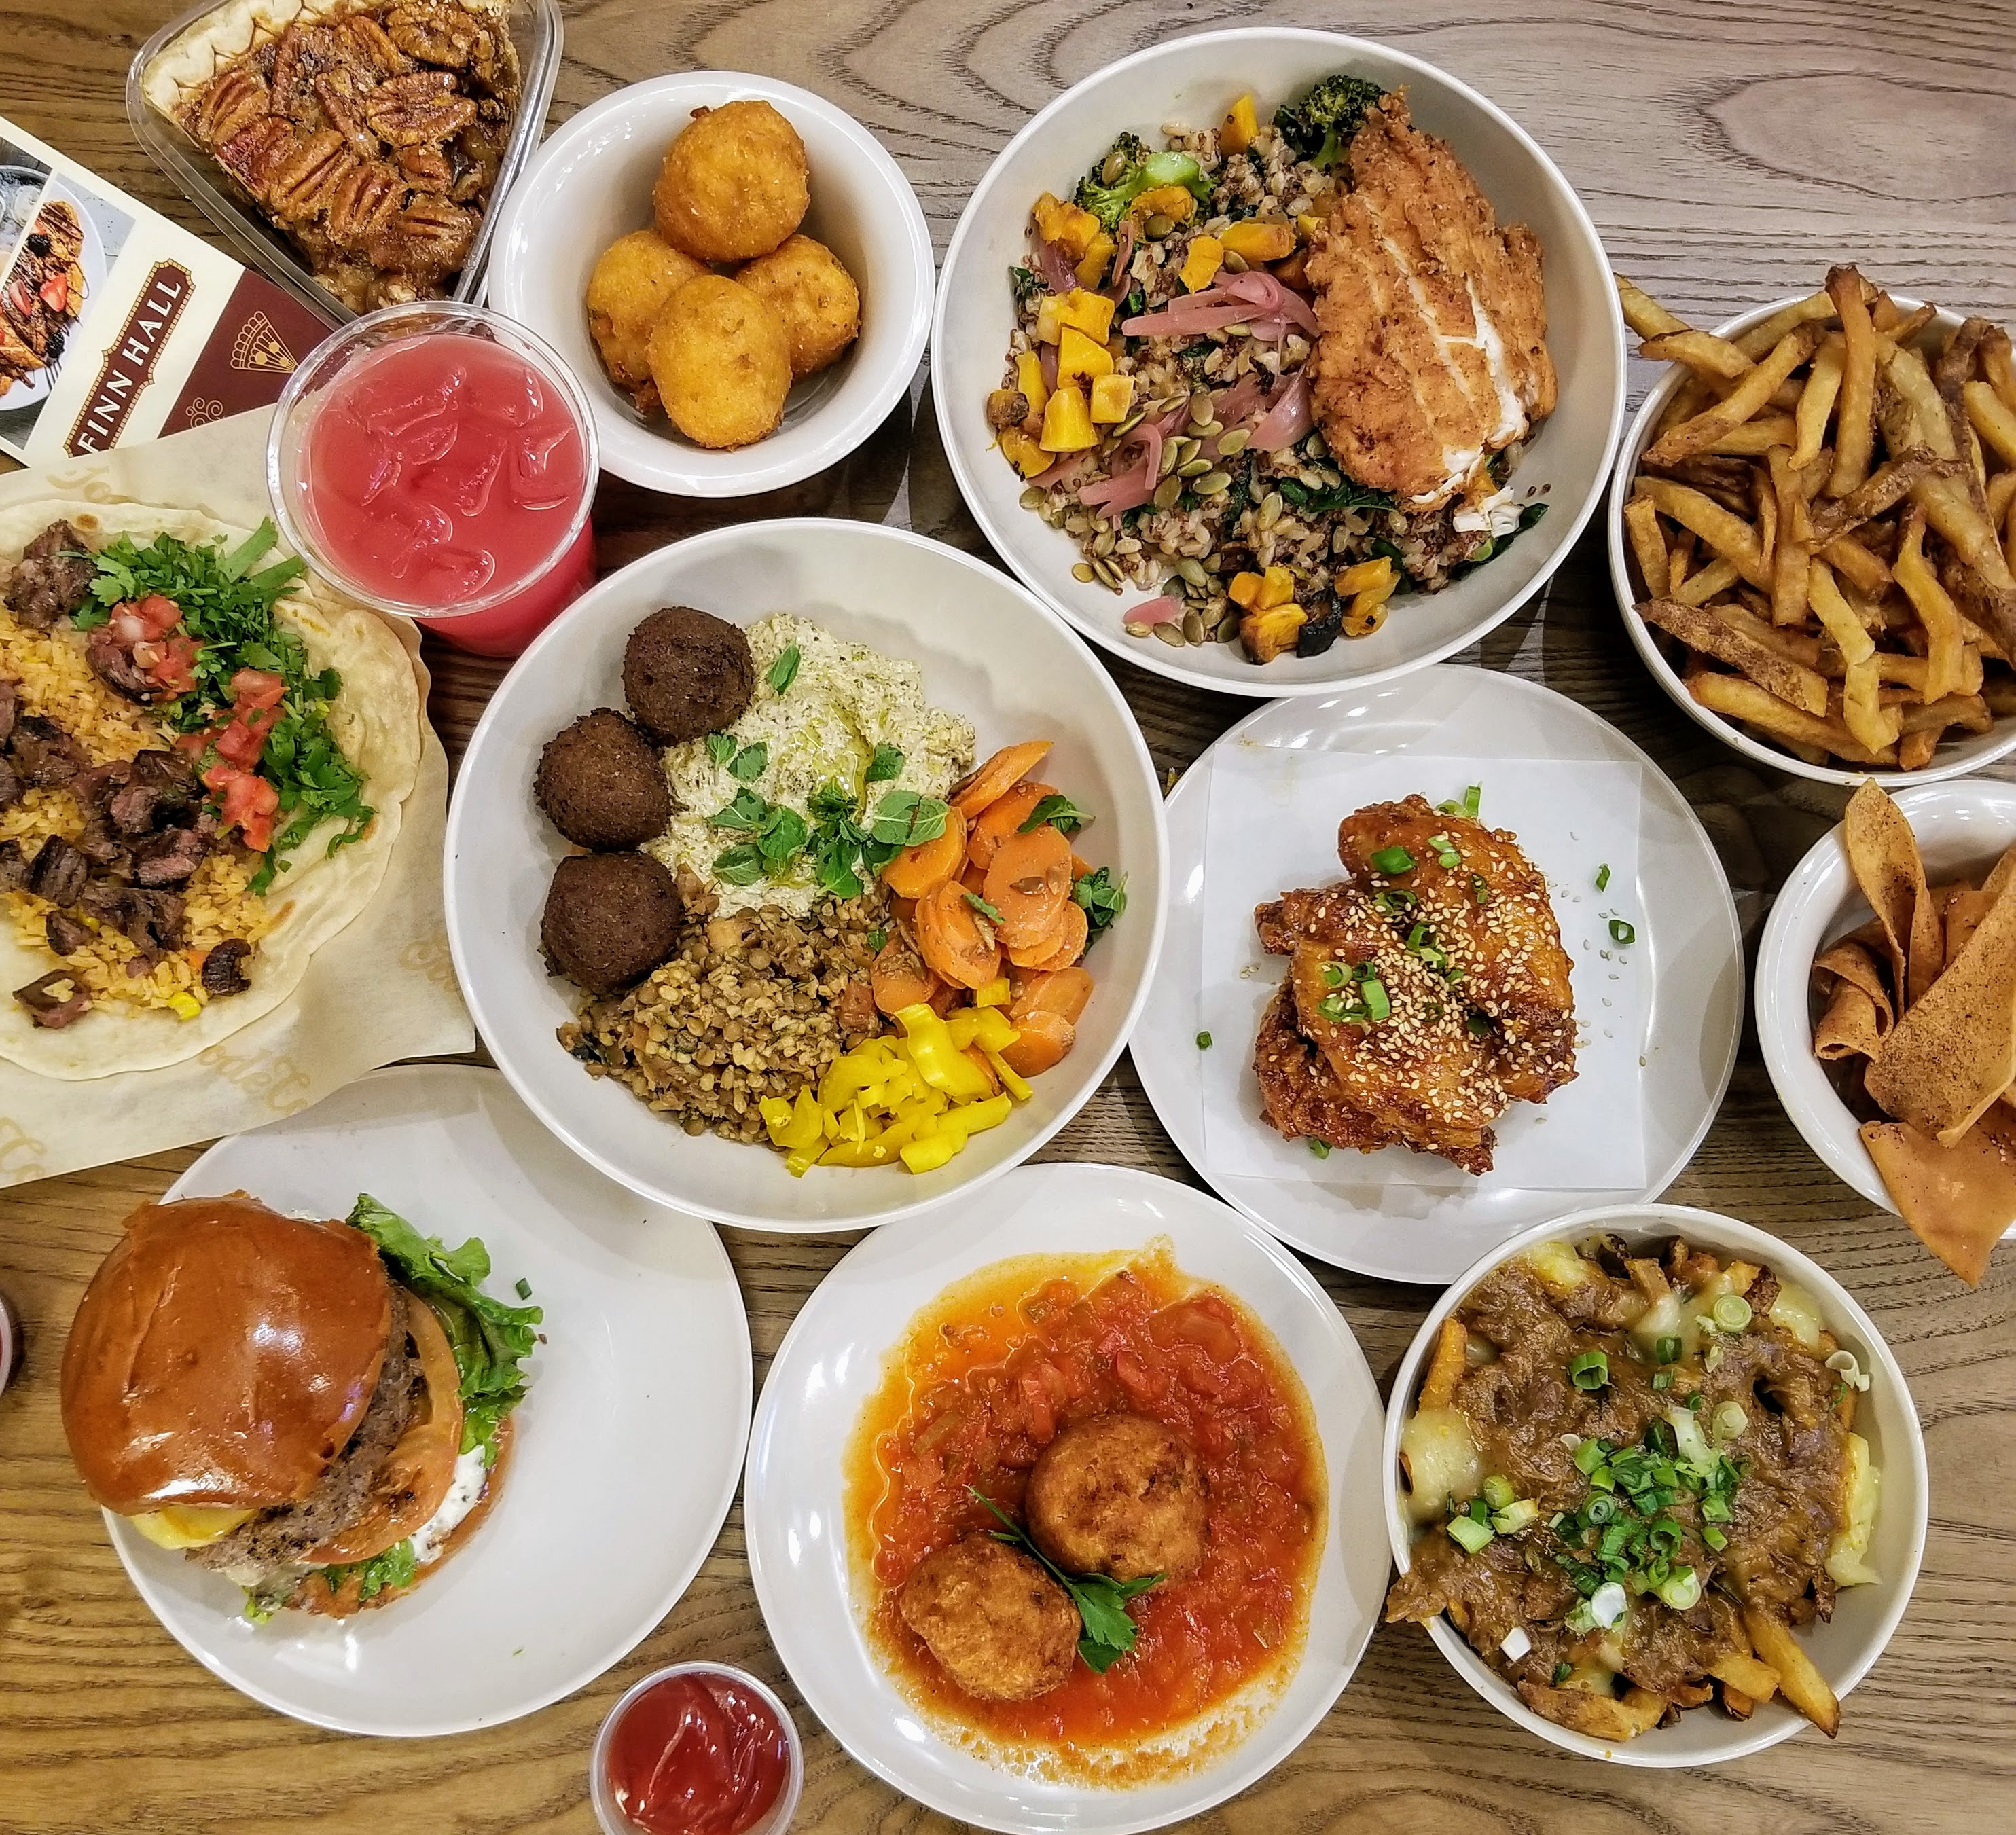 Finn Hall Food Guide: My top lunch picks from Downtown Houston's premier Food Hall   Downtown Houston